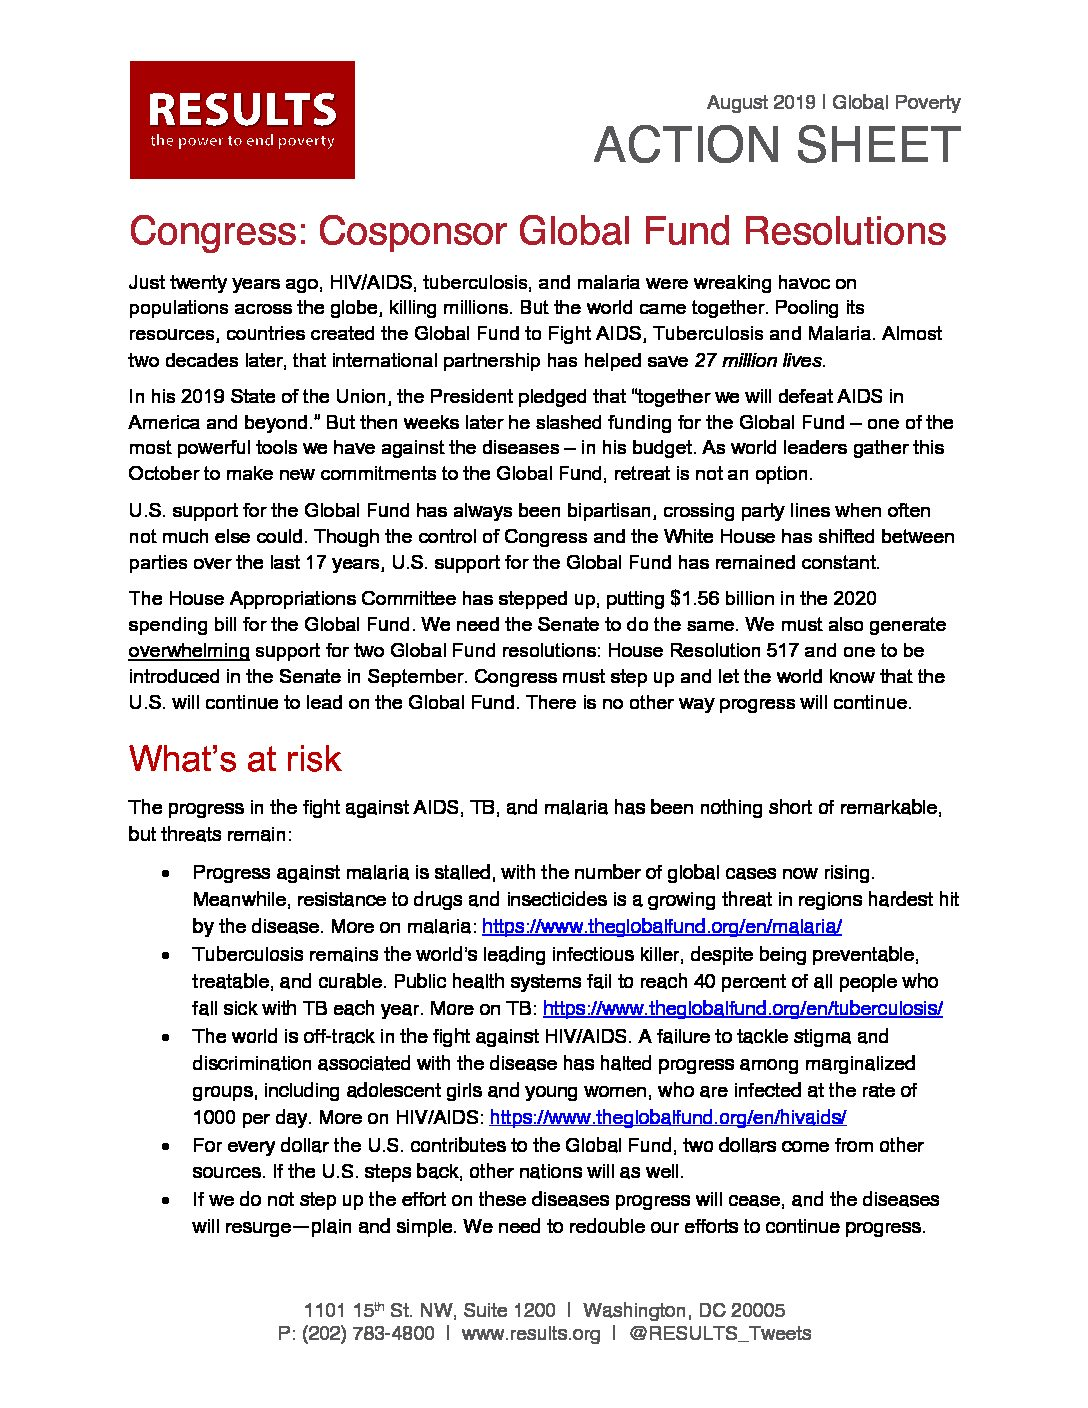 August 2019 Global Action Letter To Congress Global Fund Resolutions